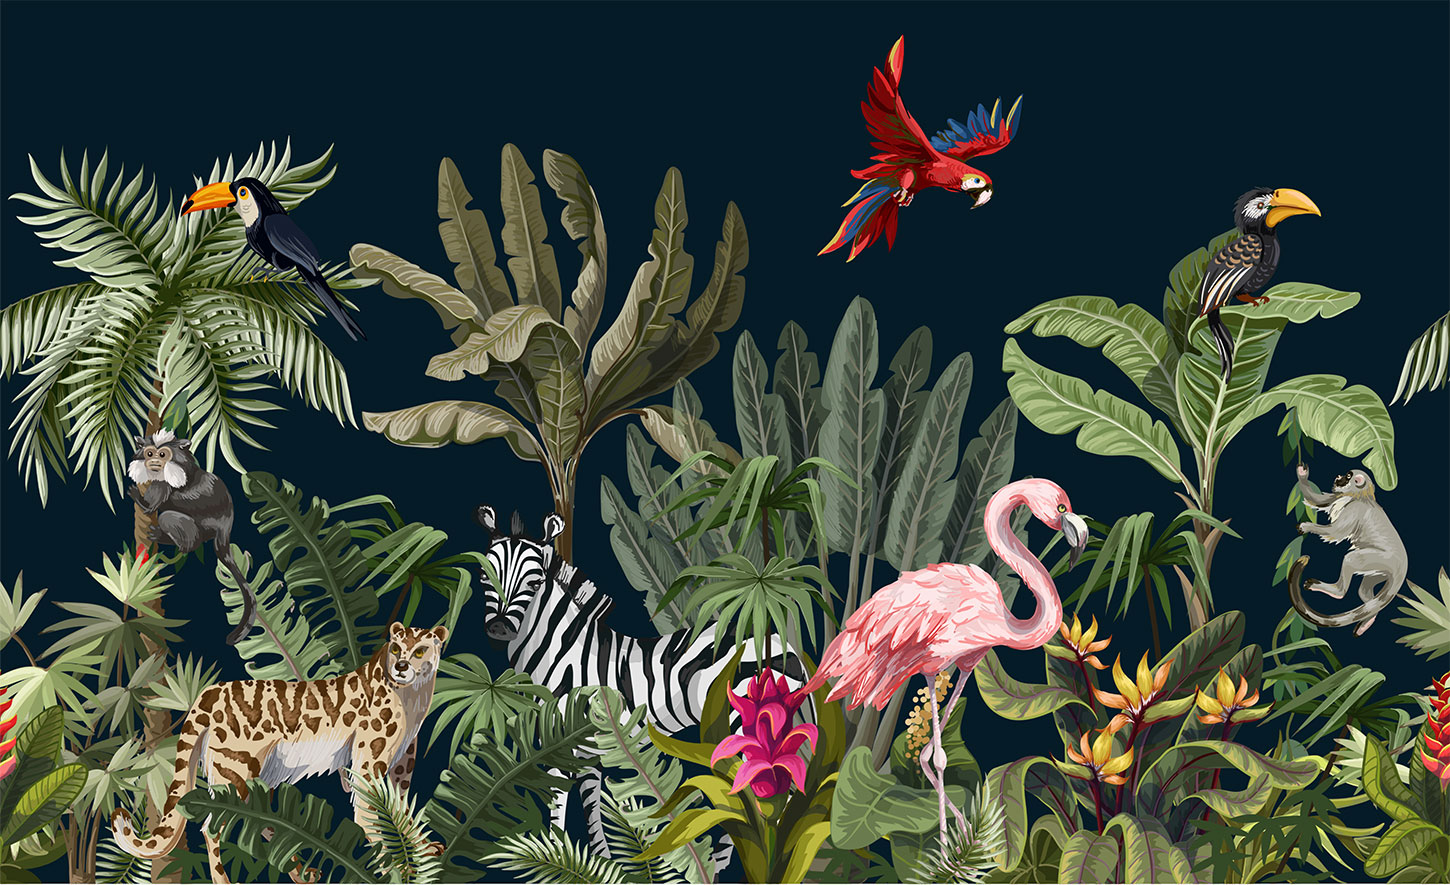 Illustration of jungle animals at night